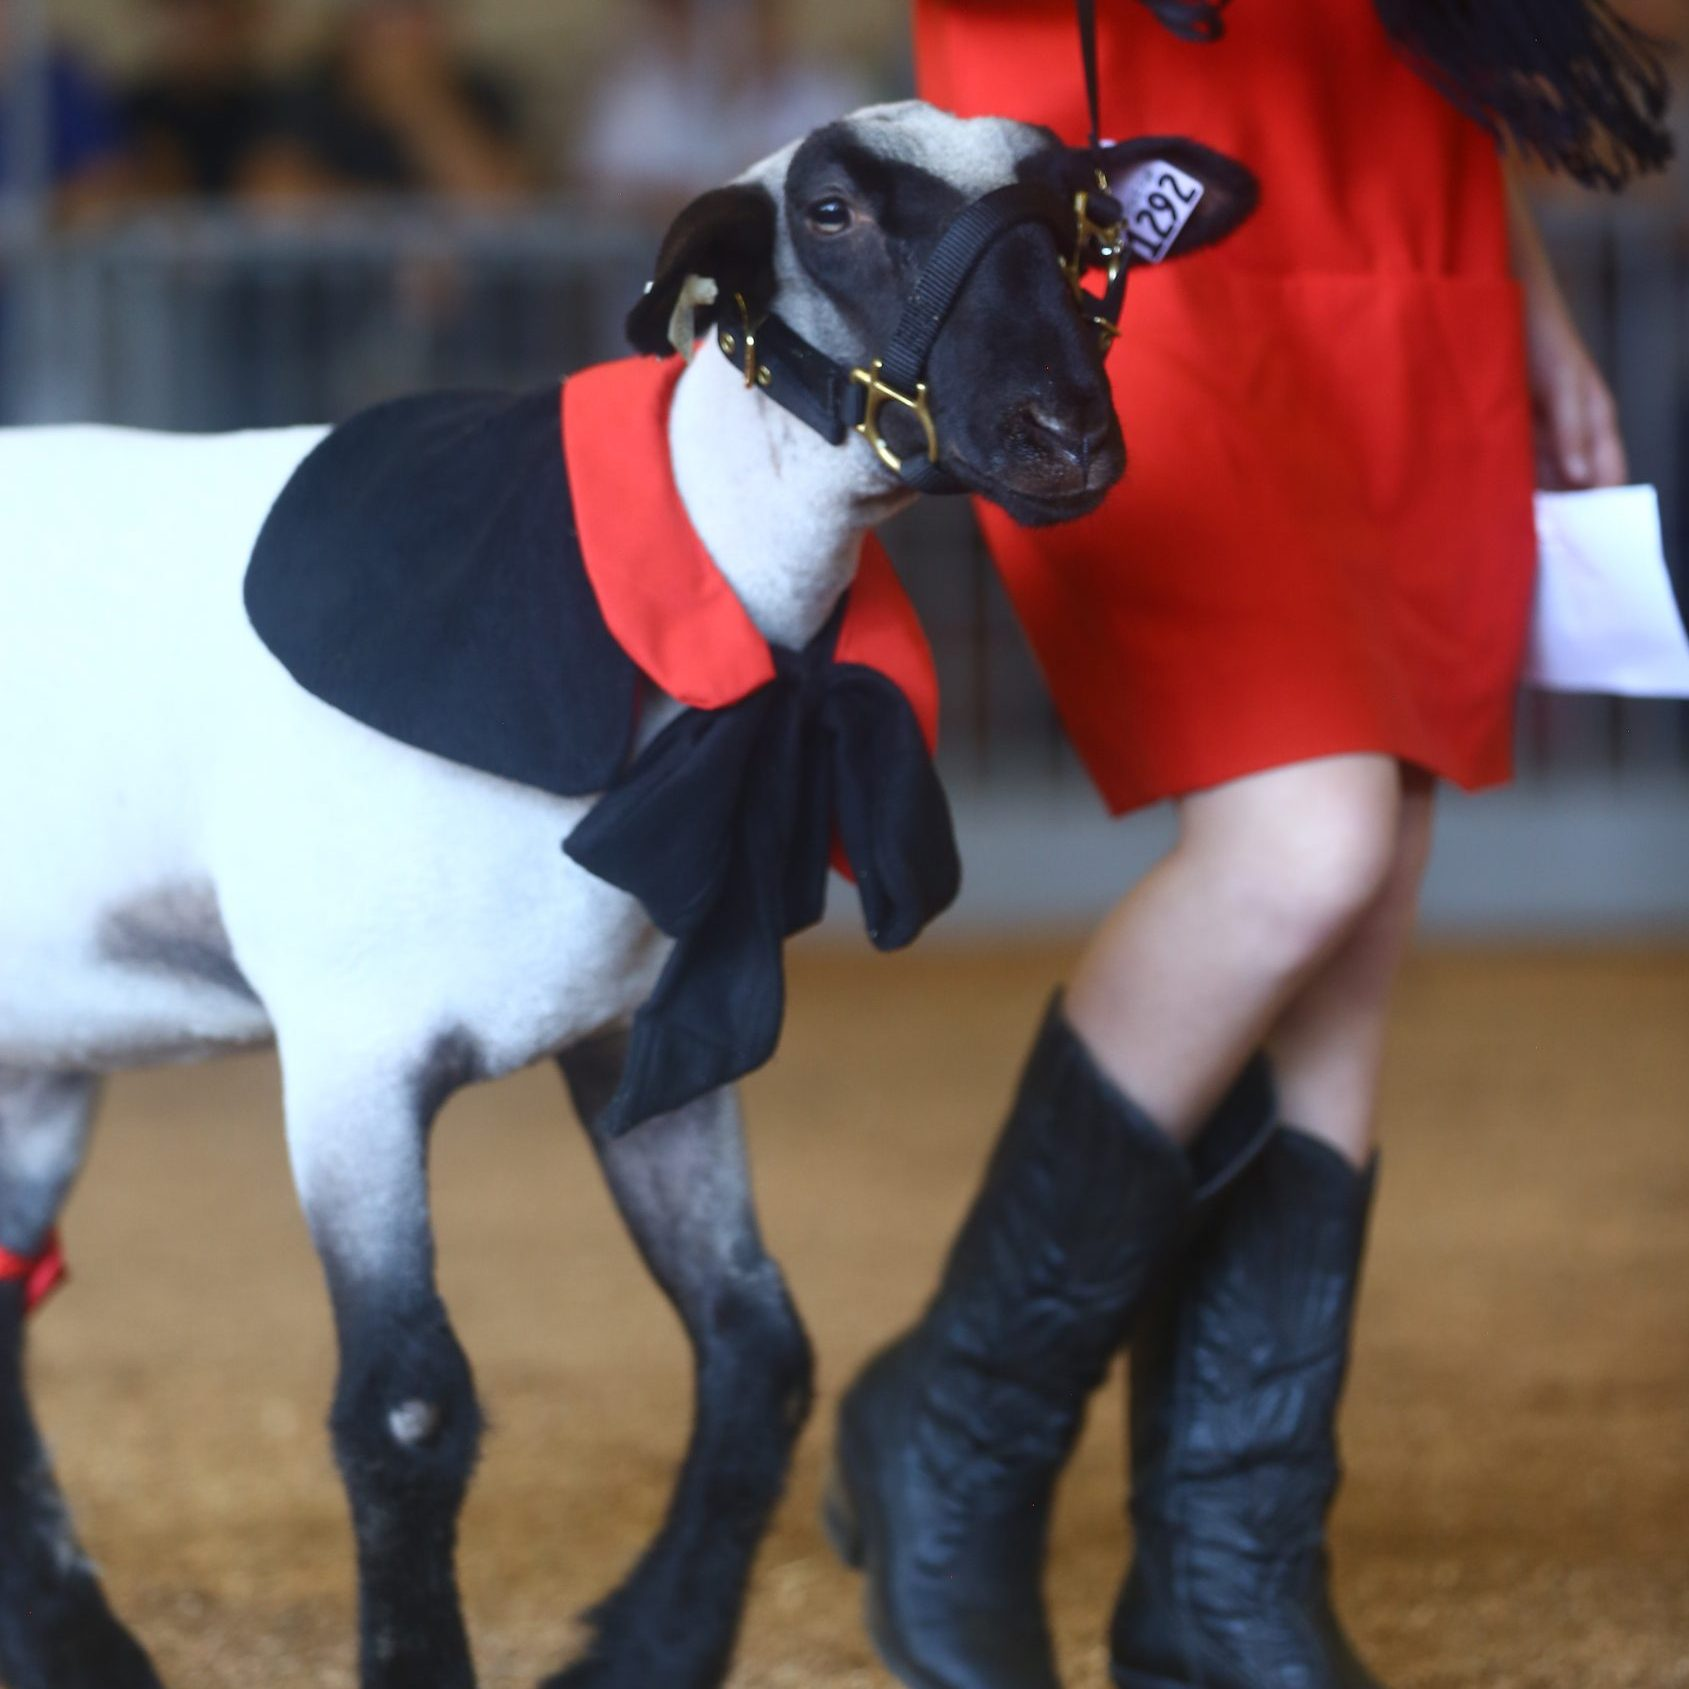 Lamb dressed up with person